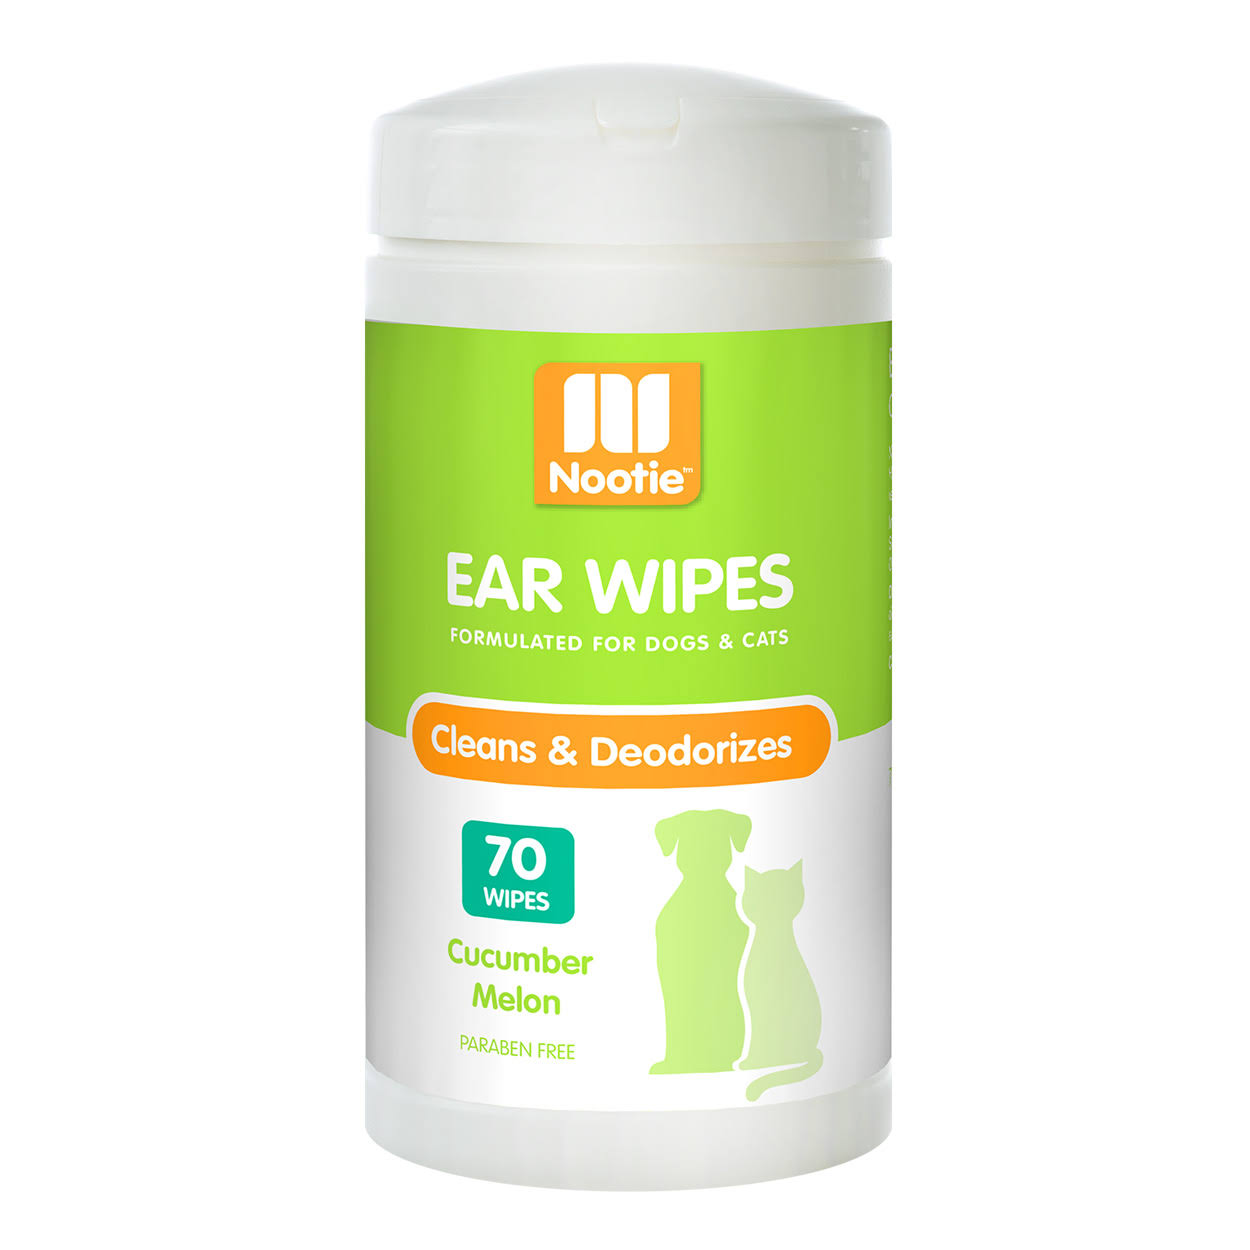 Nootie Ear Wipes, Cucumber Melon, 70 Count